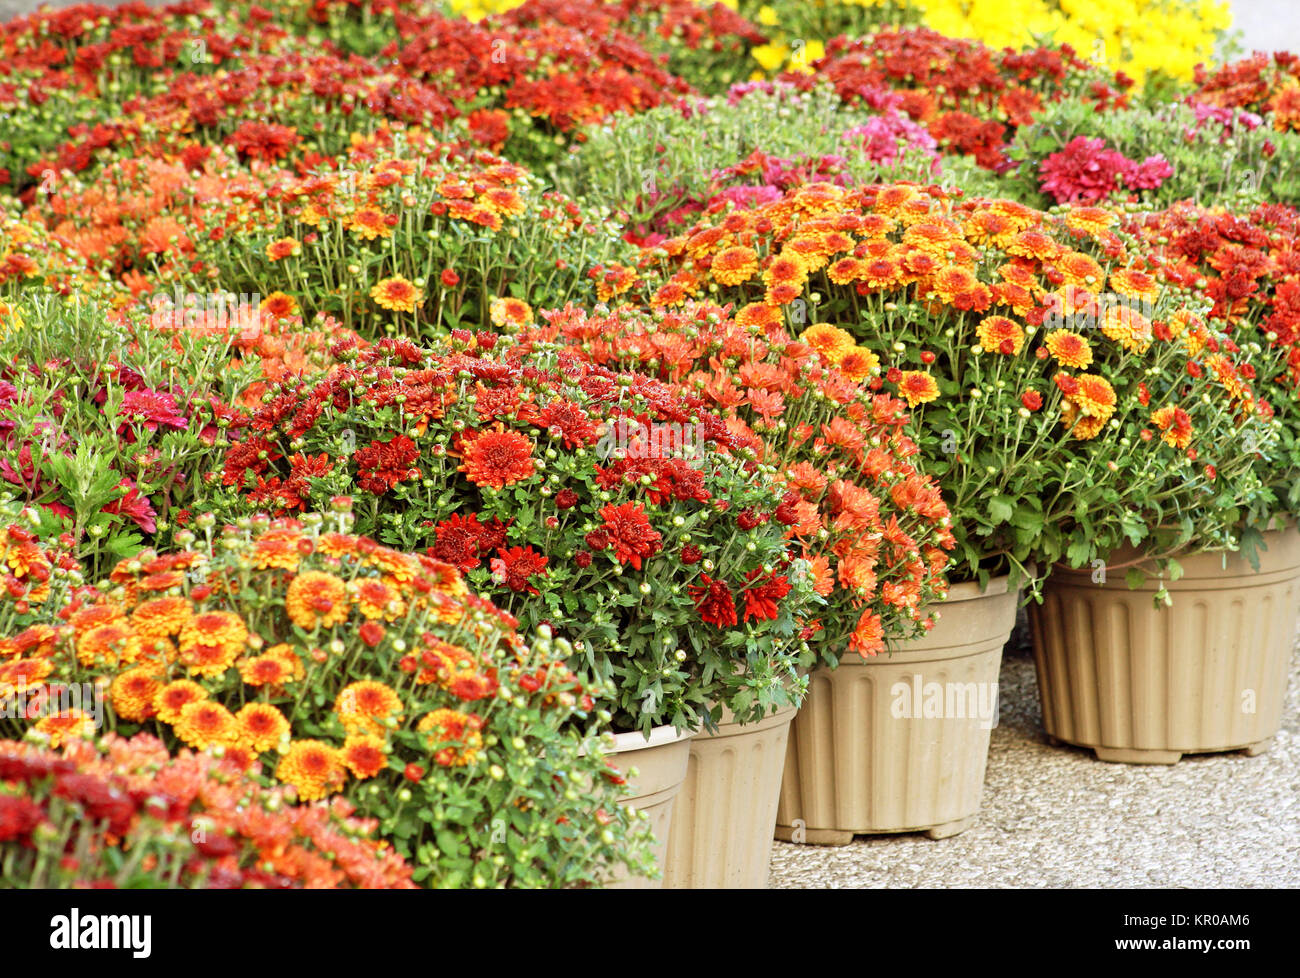 Colorful Garden Mums For Sale - Stock Image